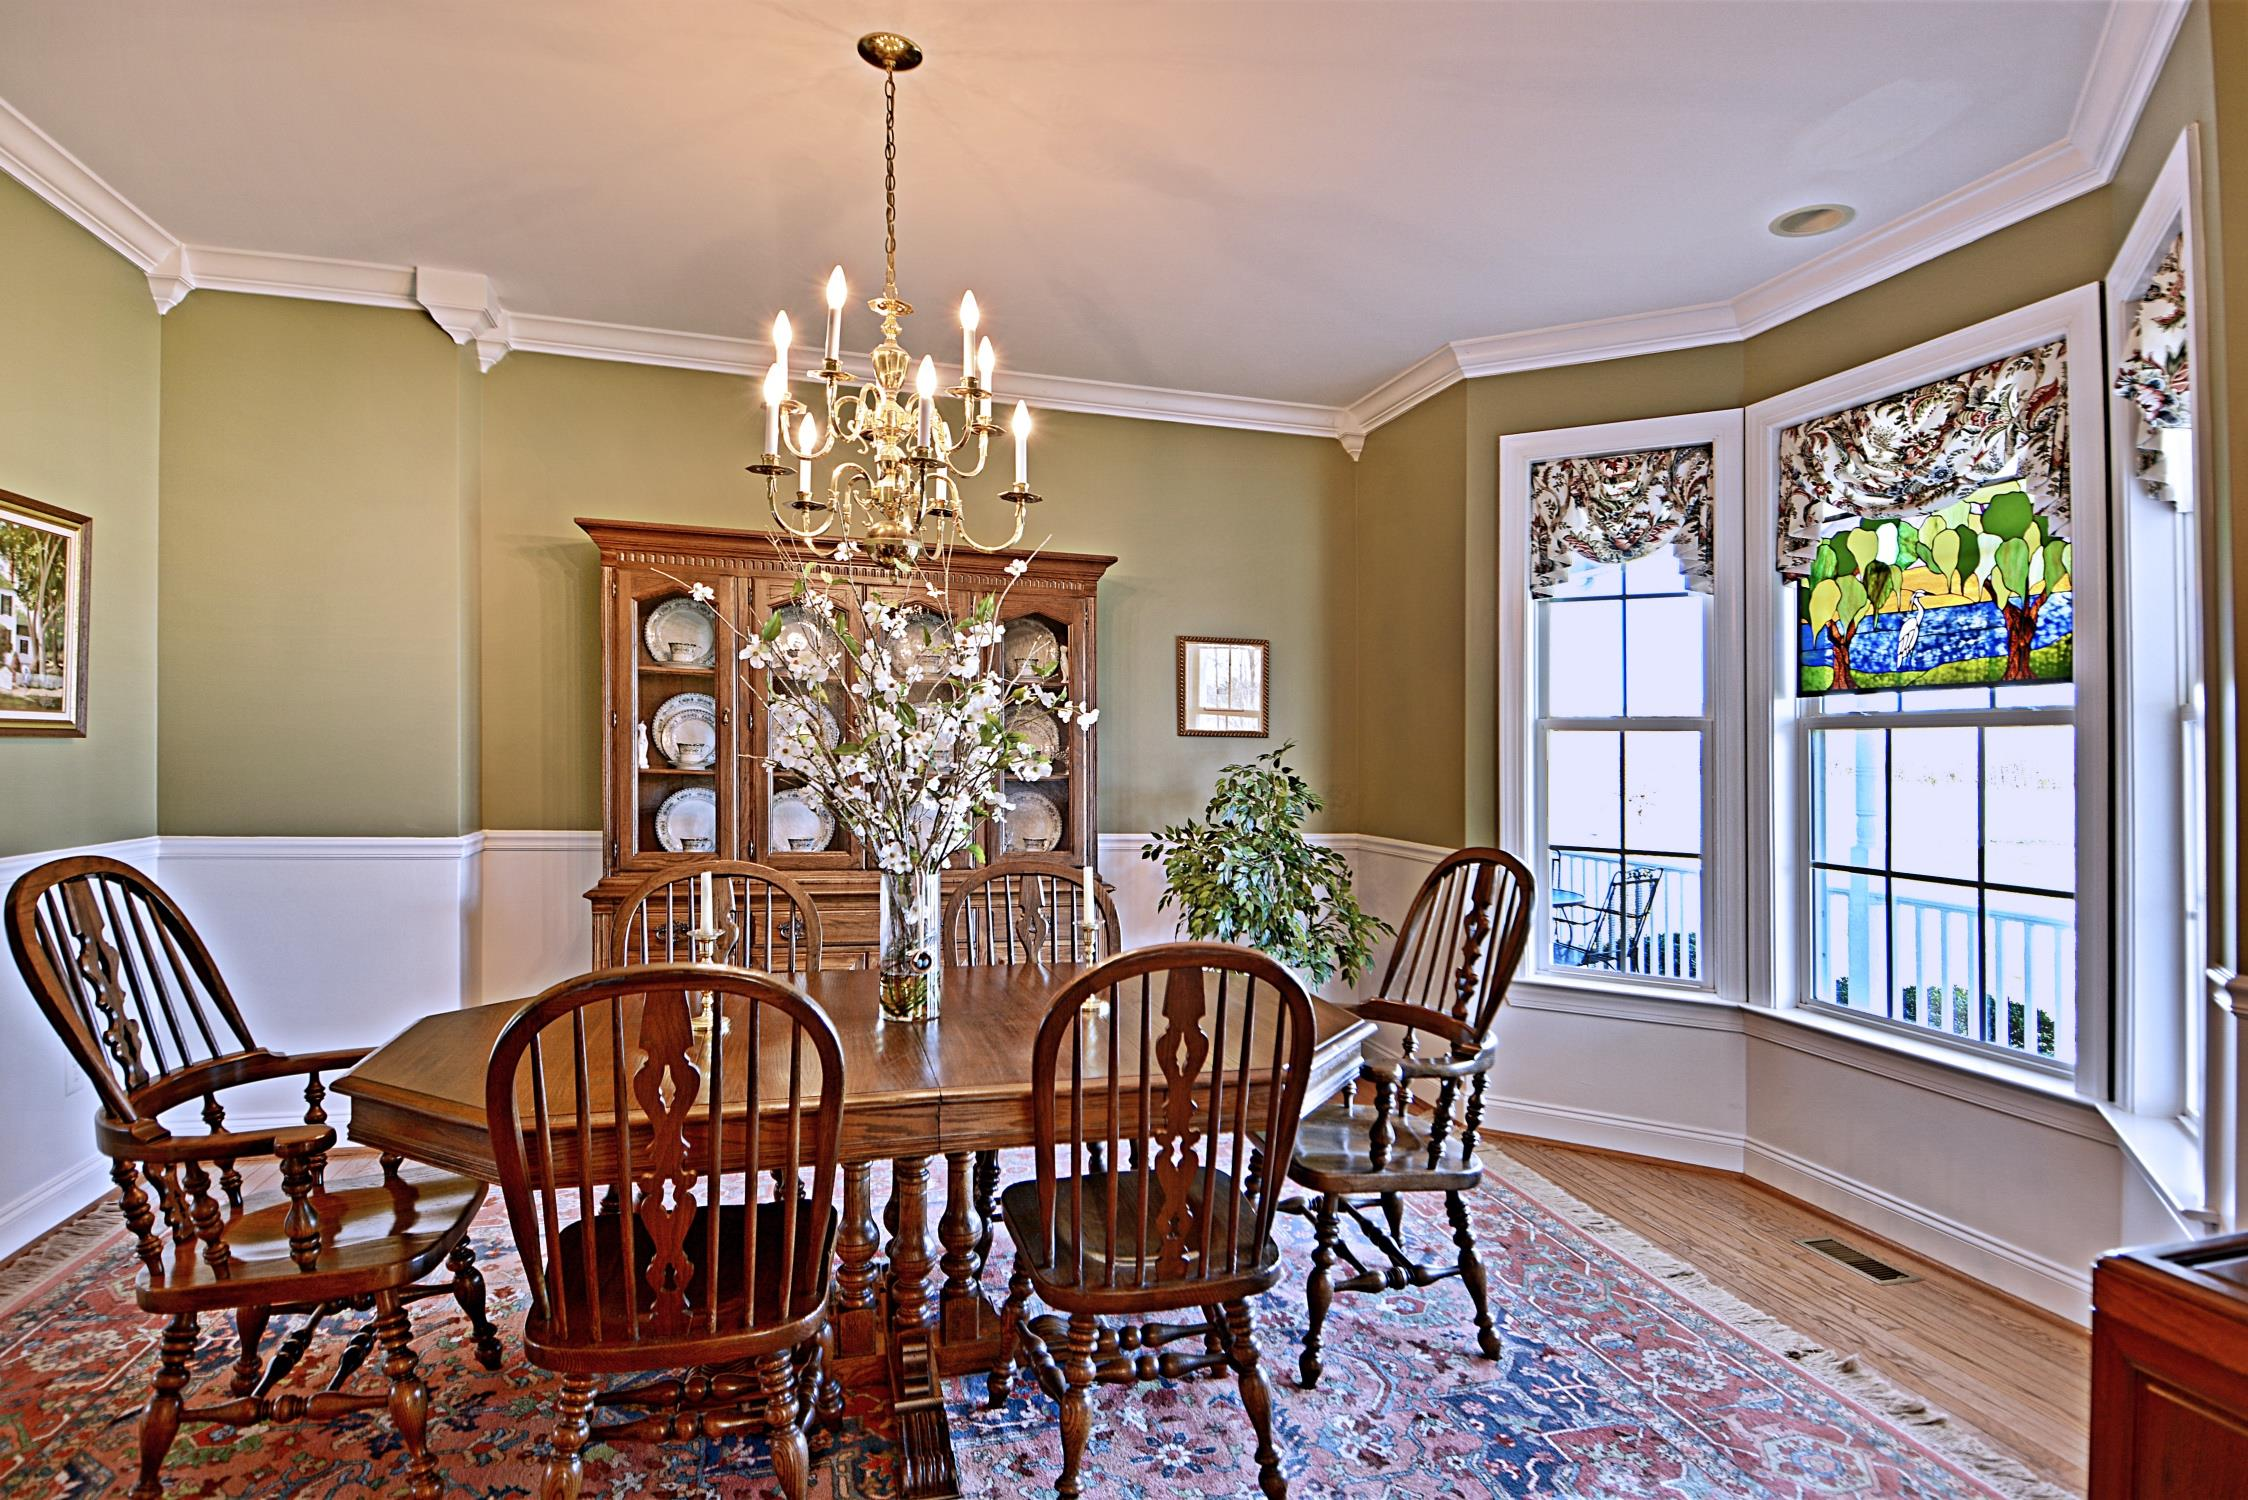 Formal Dining Room at 21581 Montfort Rd, in Bushwood, St Marys County!  This home is a waterfront horse property located in the 7th District of Saint Marys County in Southern Maryland.  Marie Lally will show you this wonderful farm!